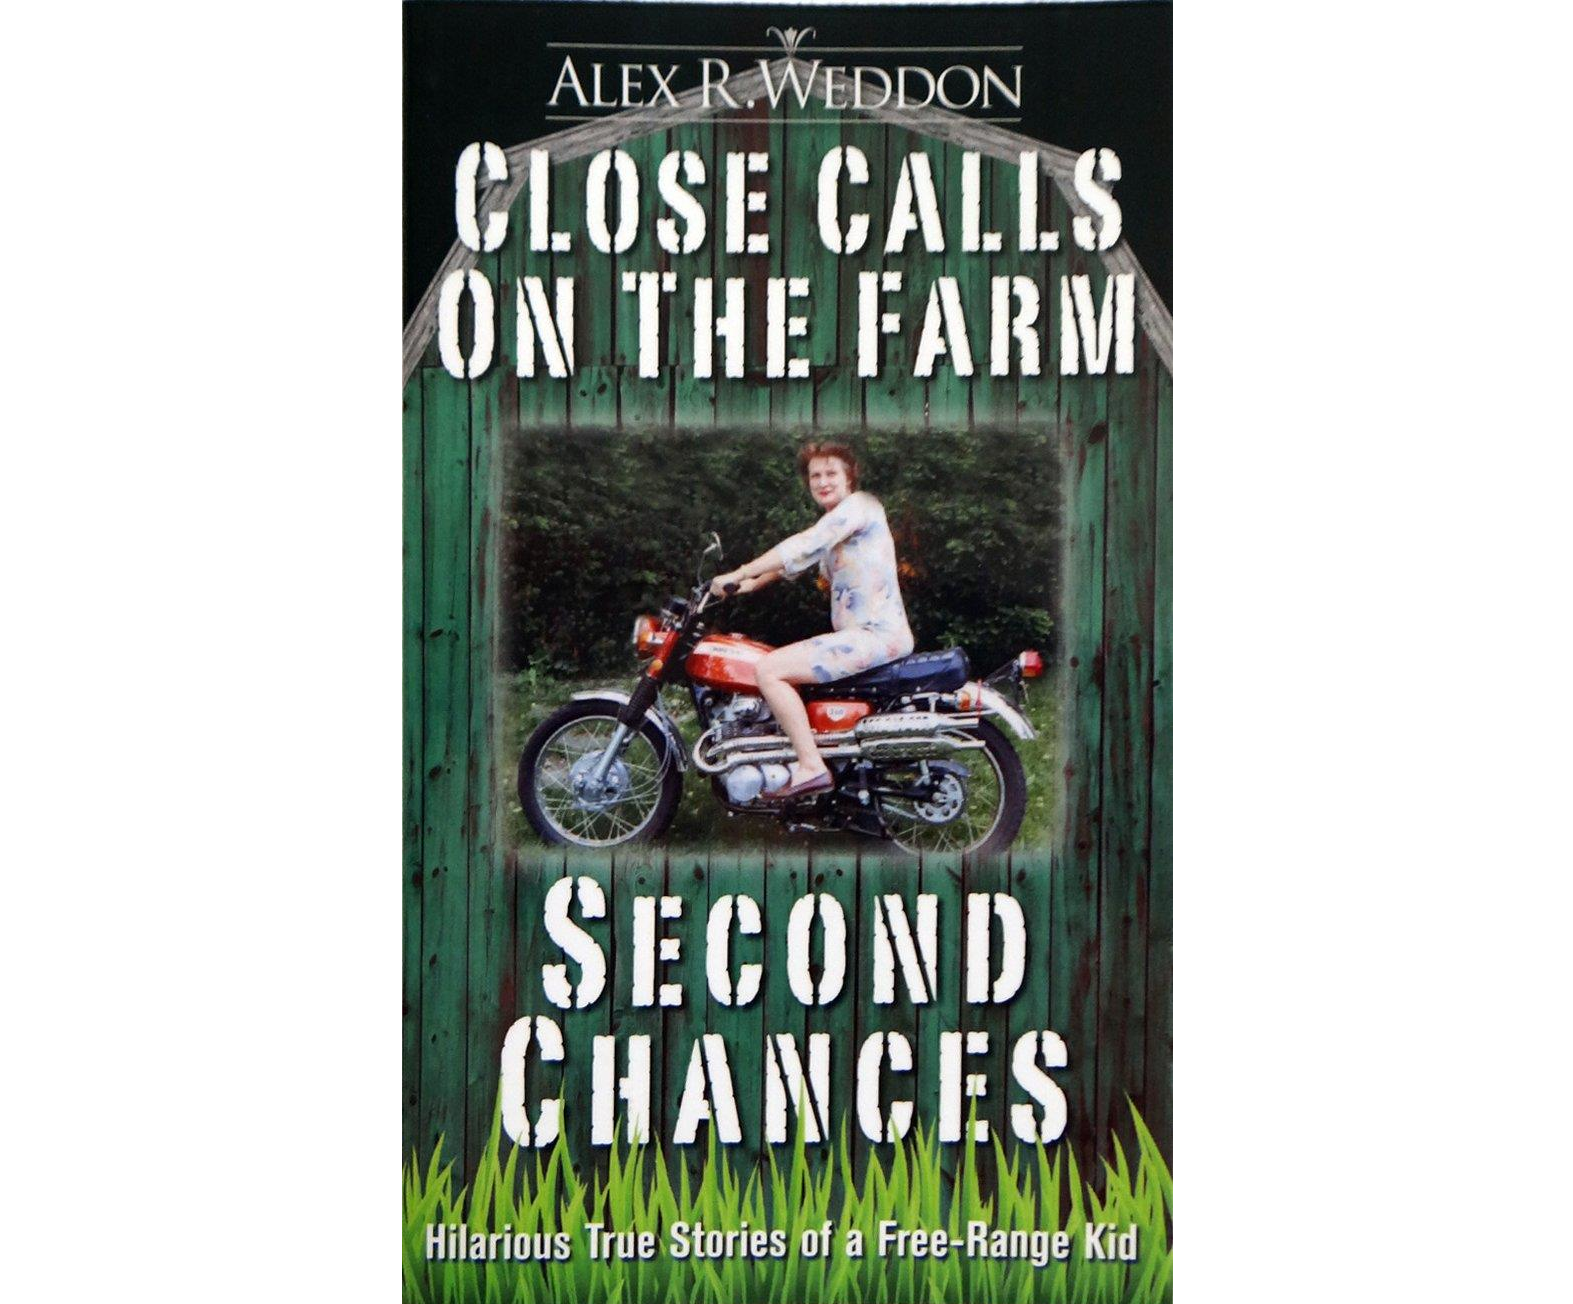 CLOSE CALLS ON THE FARM: Second Chances""